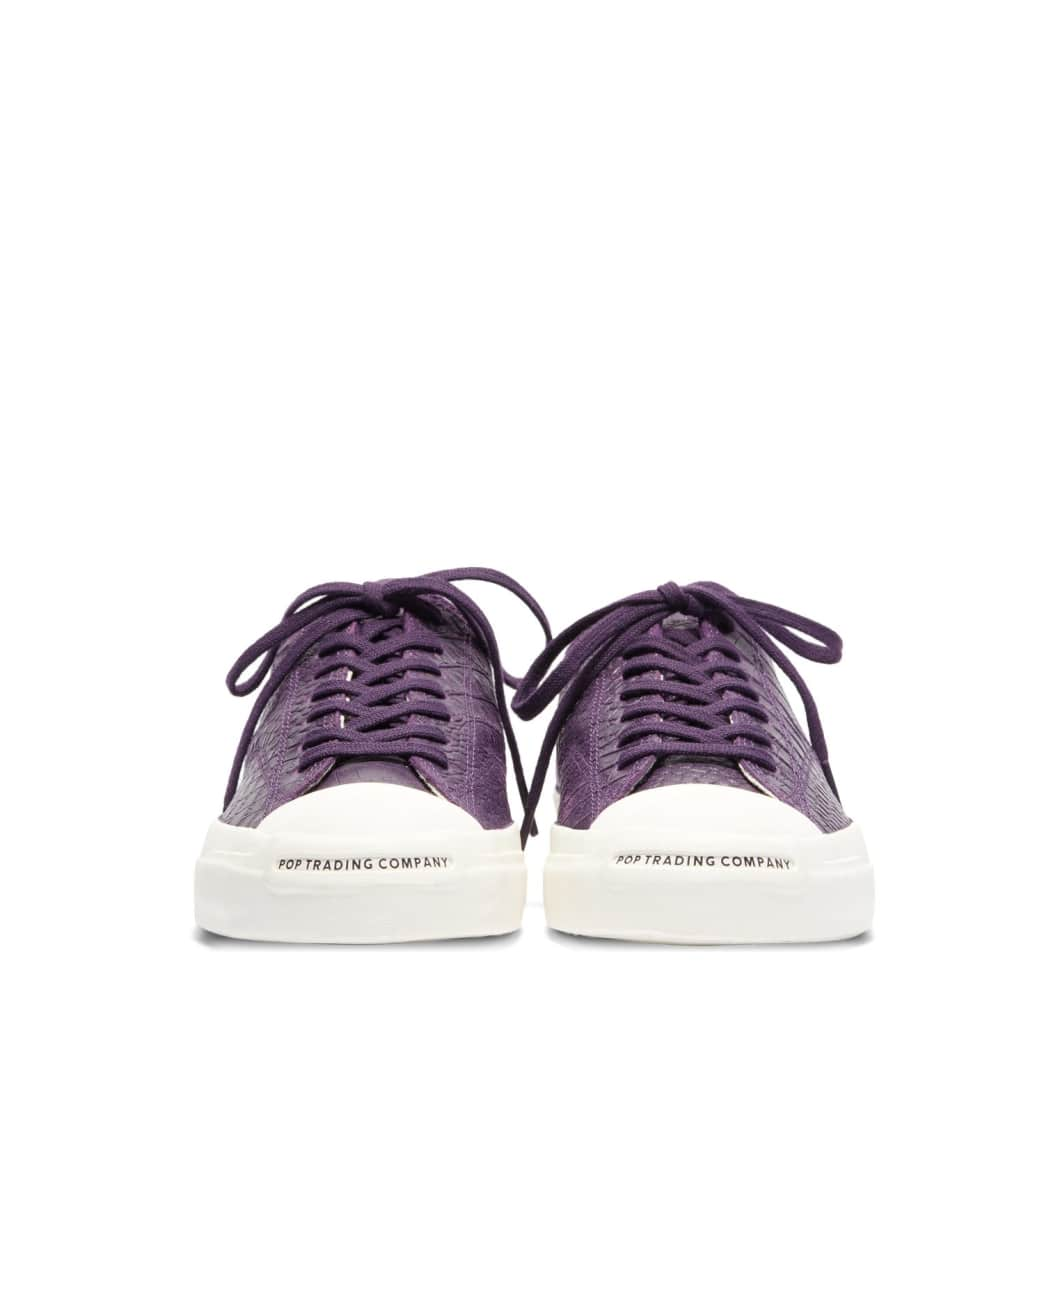 Converse CONS x Pop Trading Company JP Pro Ox Shoes - Dark Purple 'Dragonskin' | Shoes by Converse Cons 3